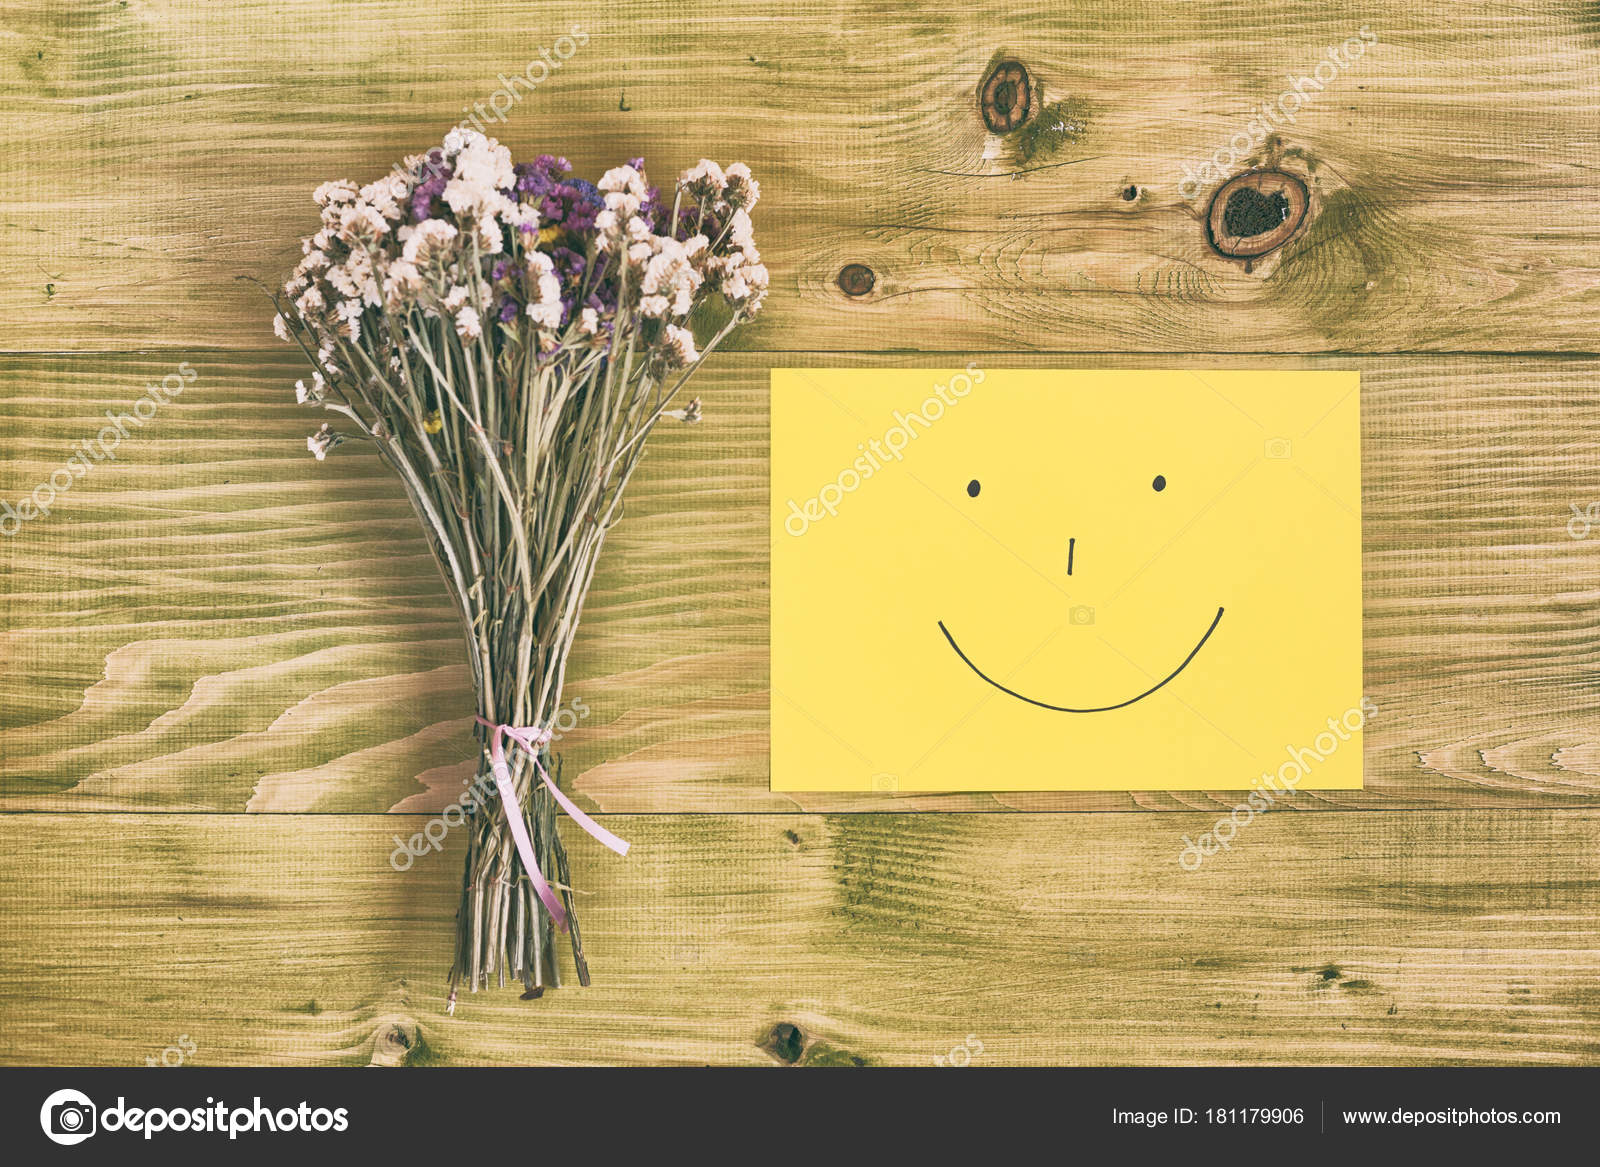 Beautiful Bouquet Flowers Smiley Face Wooden Table Image ...